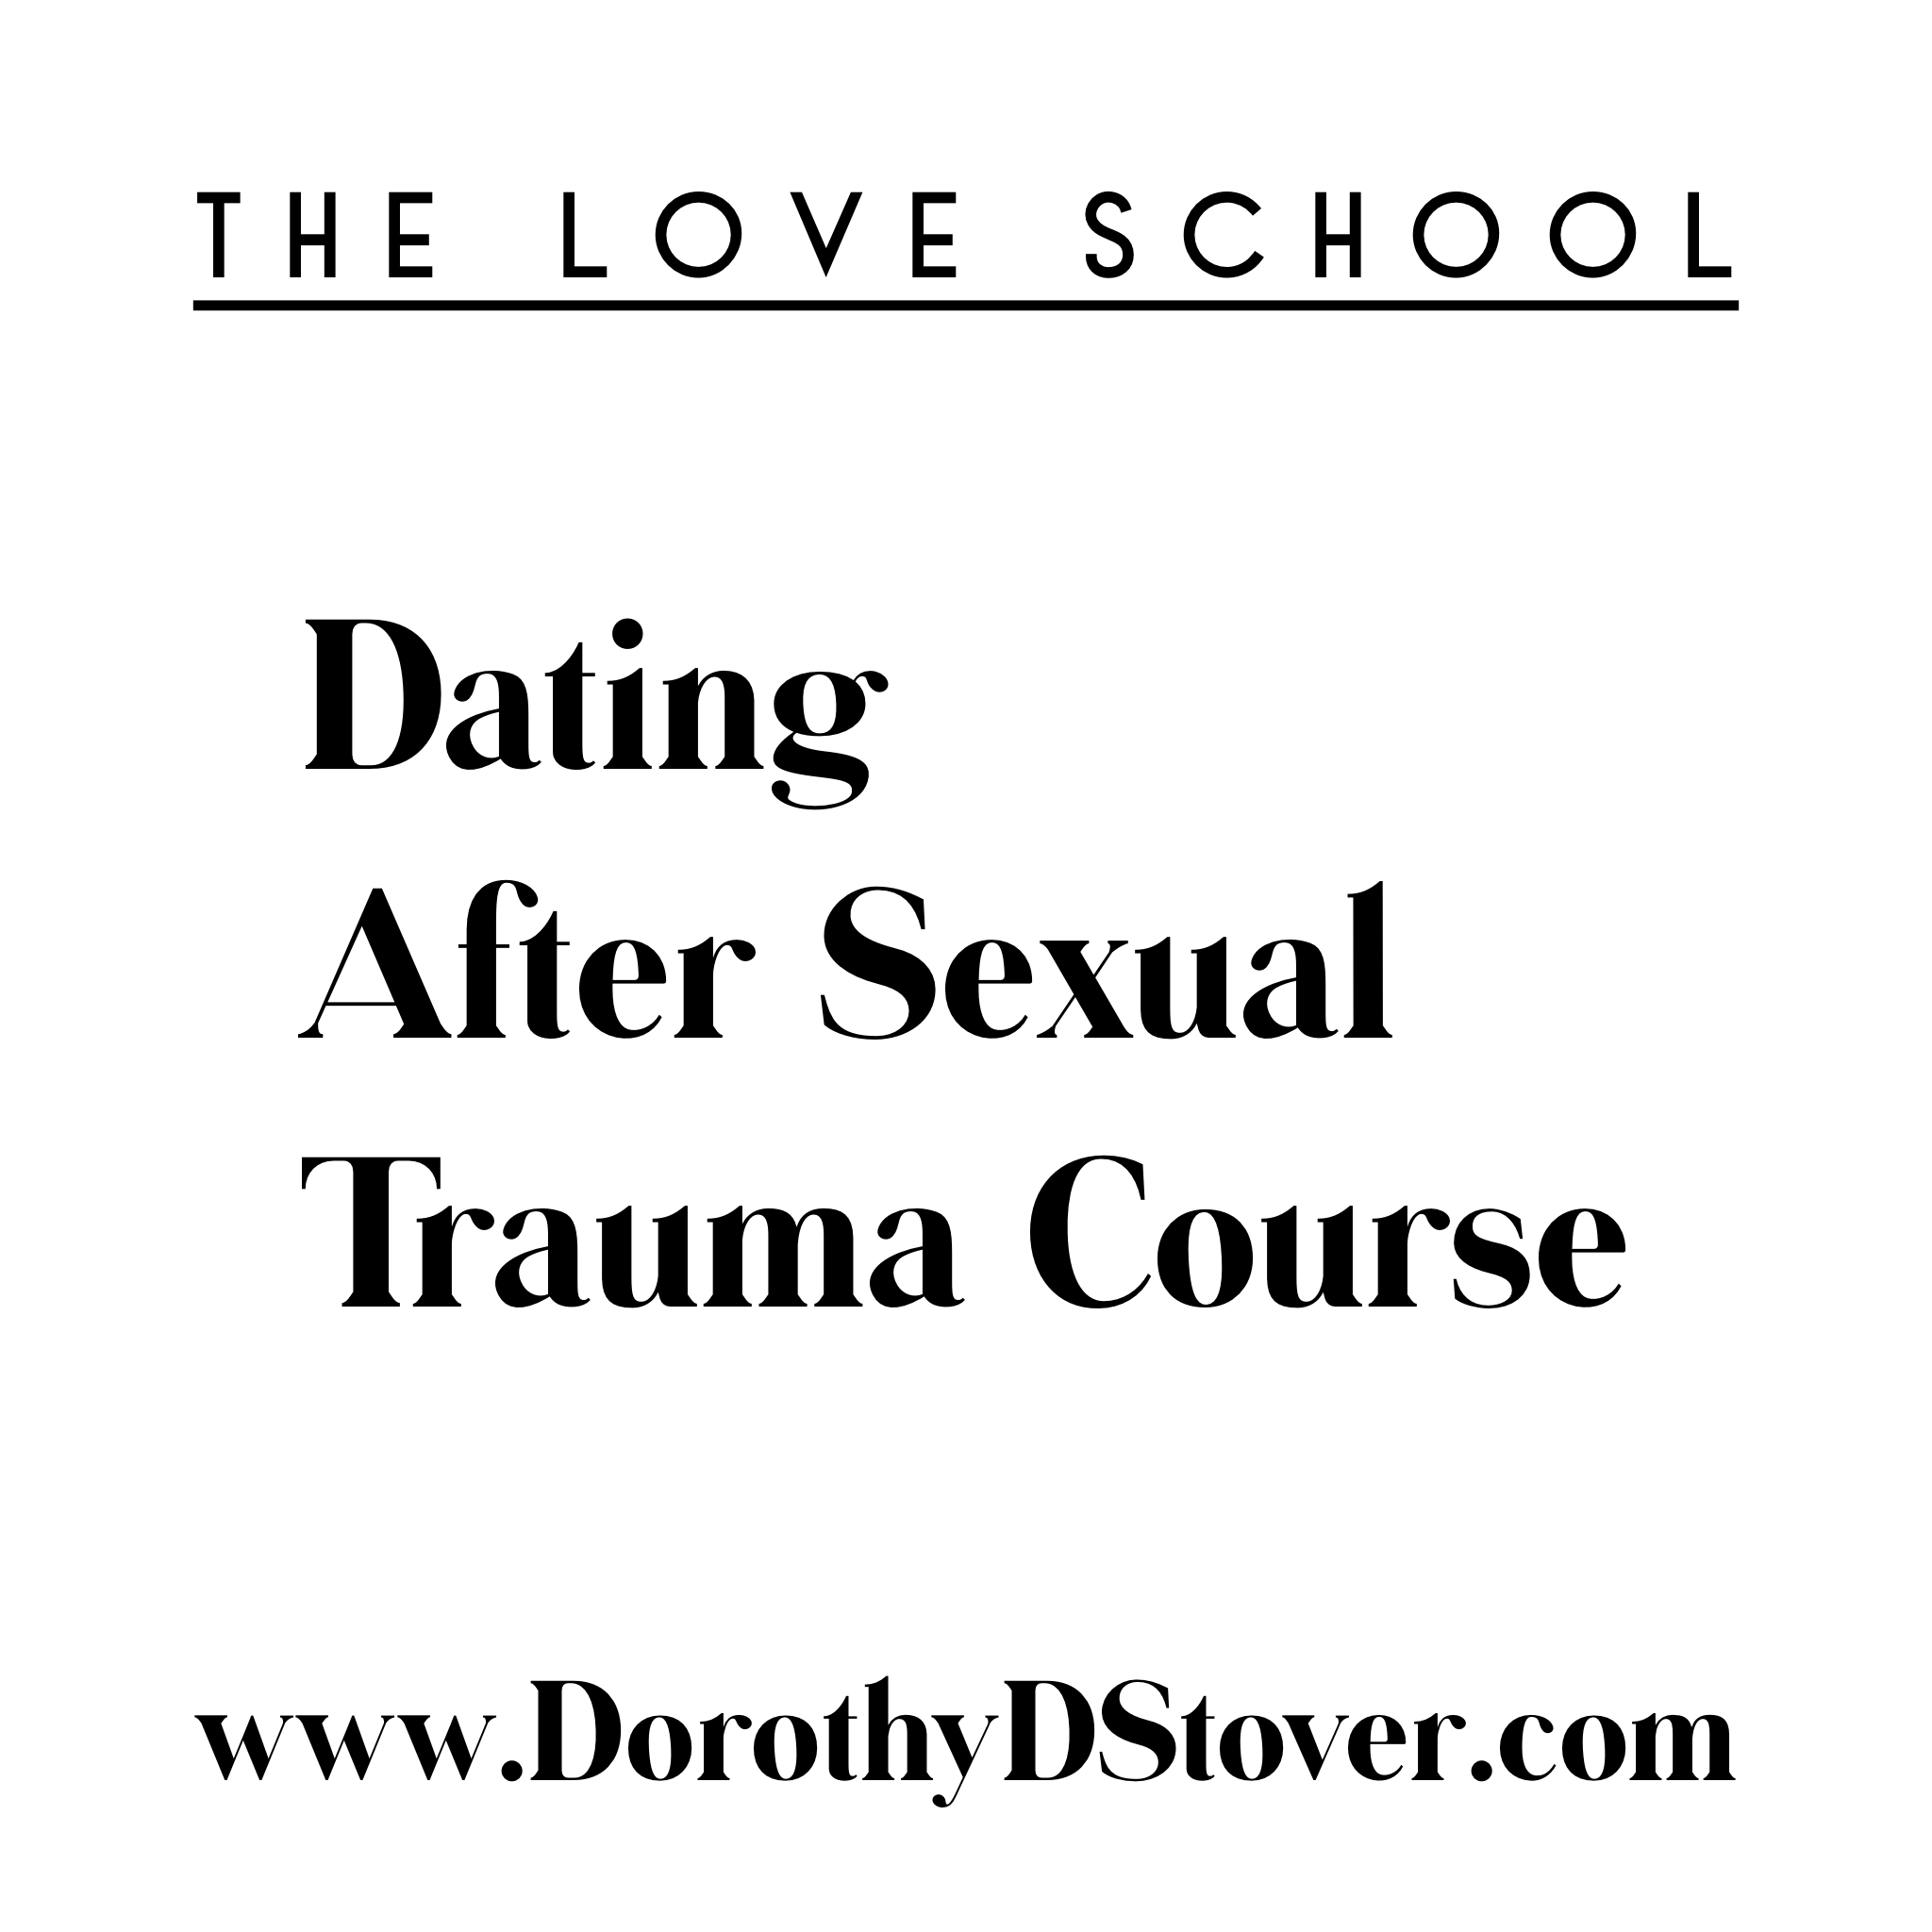 Dating After Sexual Trauma - This course is dating after sexual trauma. The course will take you through what it looks and feels like to be in a healthy dating environment as well as a healthy relationship. How to establish healthy boundaries. The course also takes the student through like step by step helping you find solid matches, screen them, perfect date formula and what to do after a date that leads to a committed and connected partnership while also honoring yourself after sexual trauma.